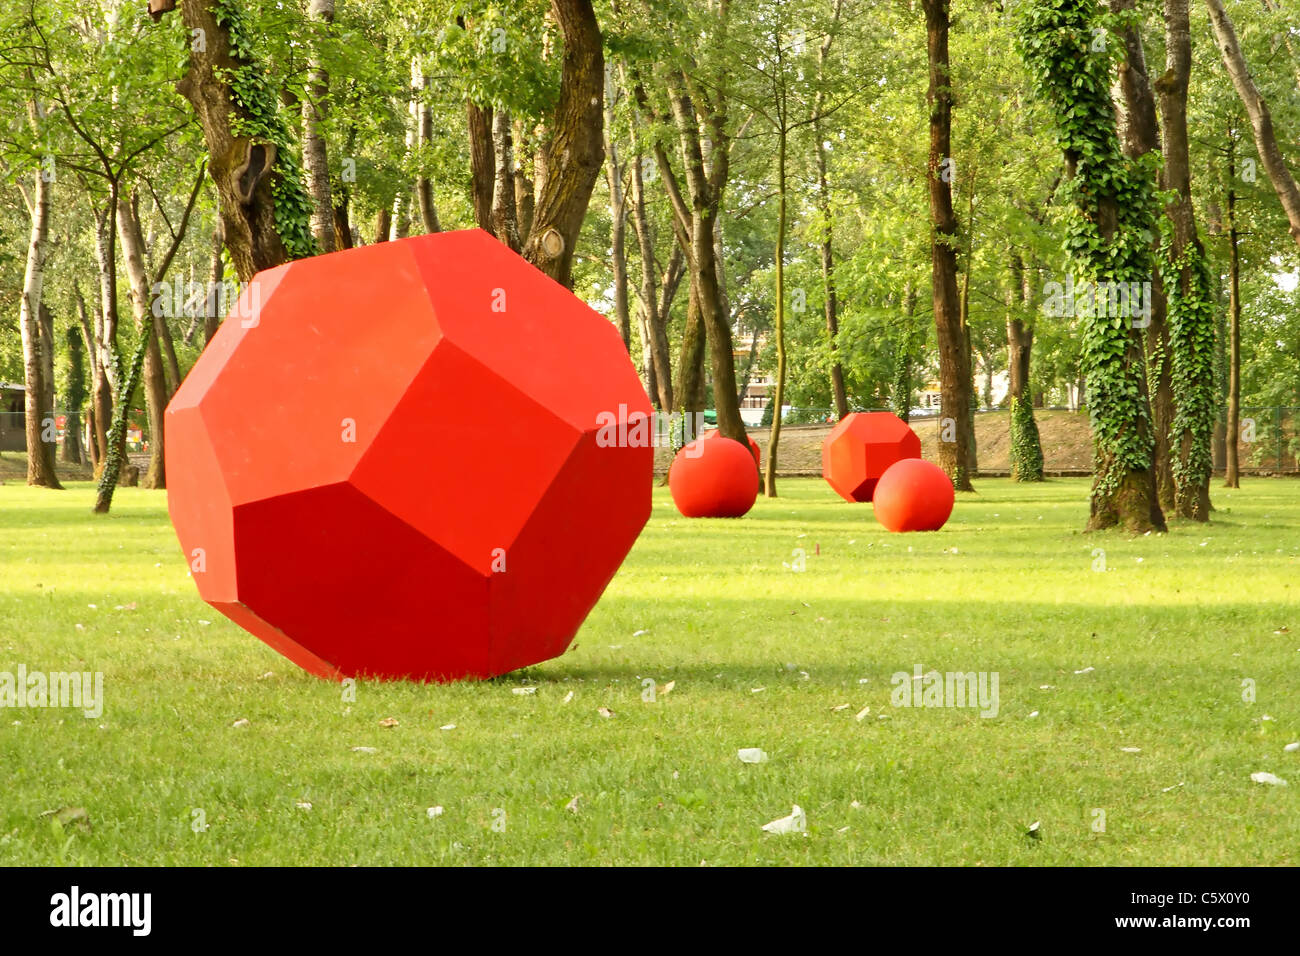 Red geometrical forms on green grass in wood - Stock Image